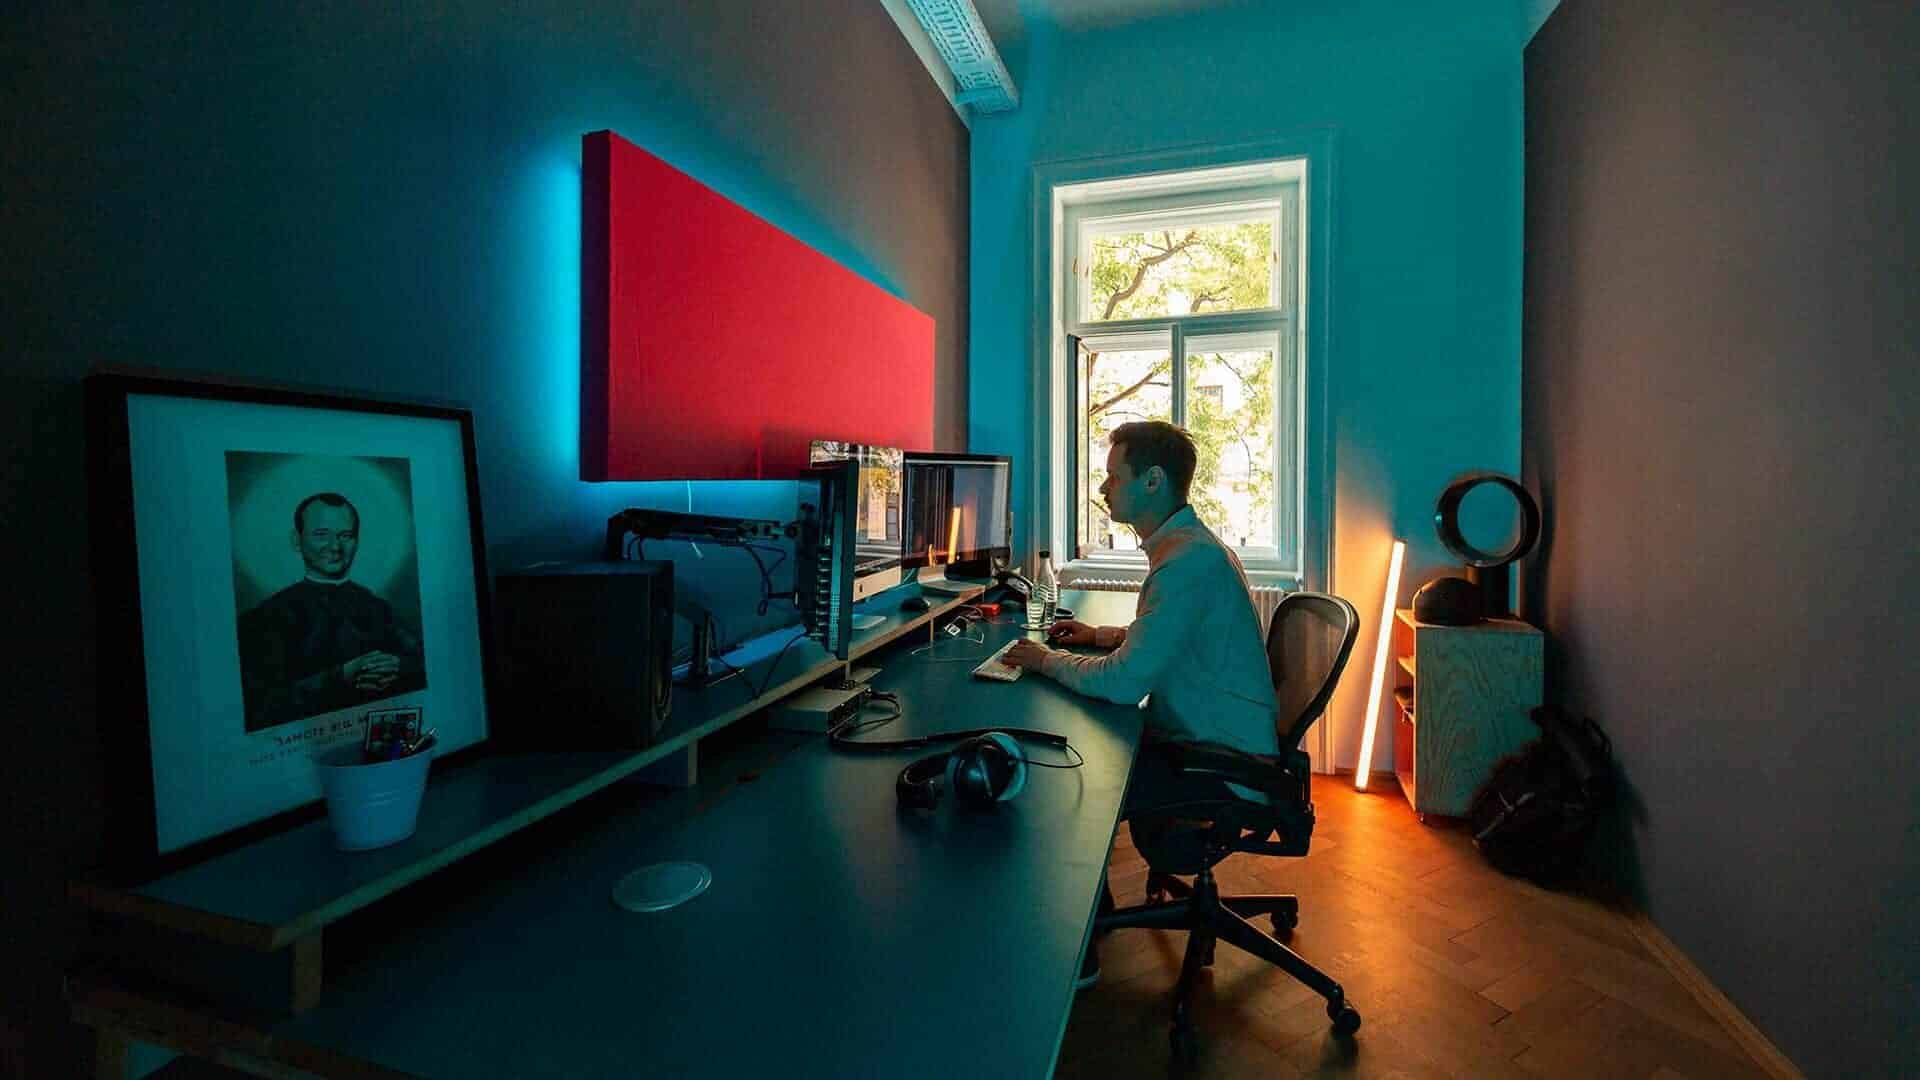 Film editing in post production